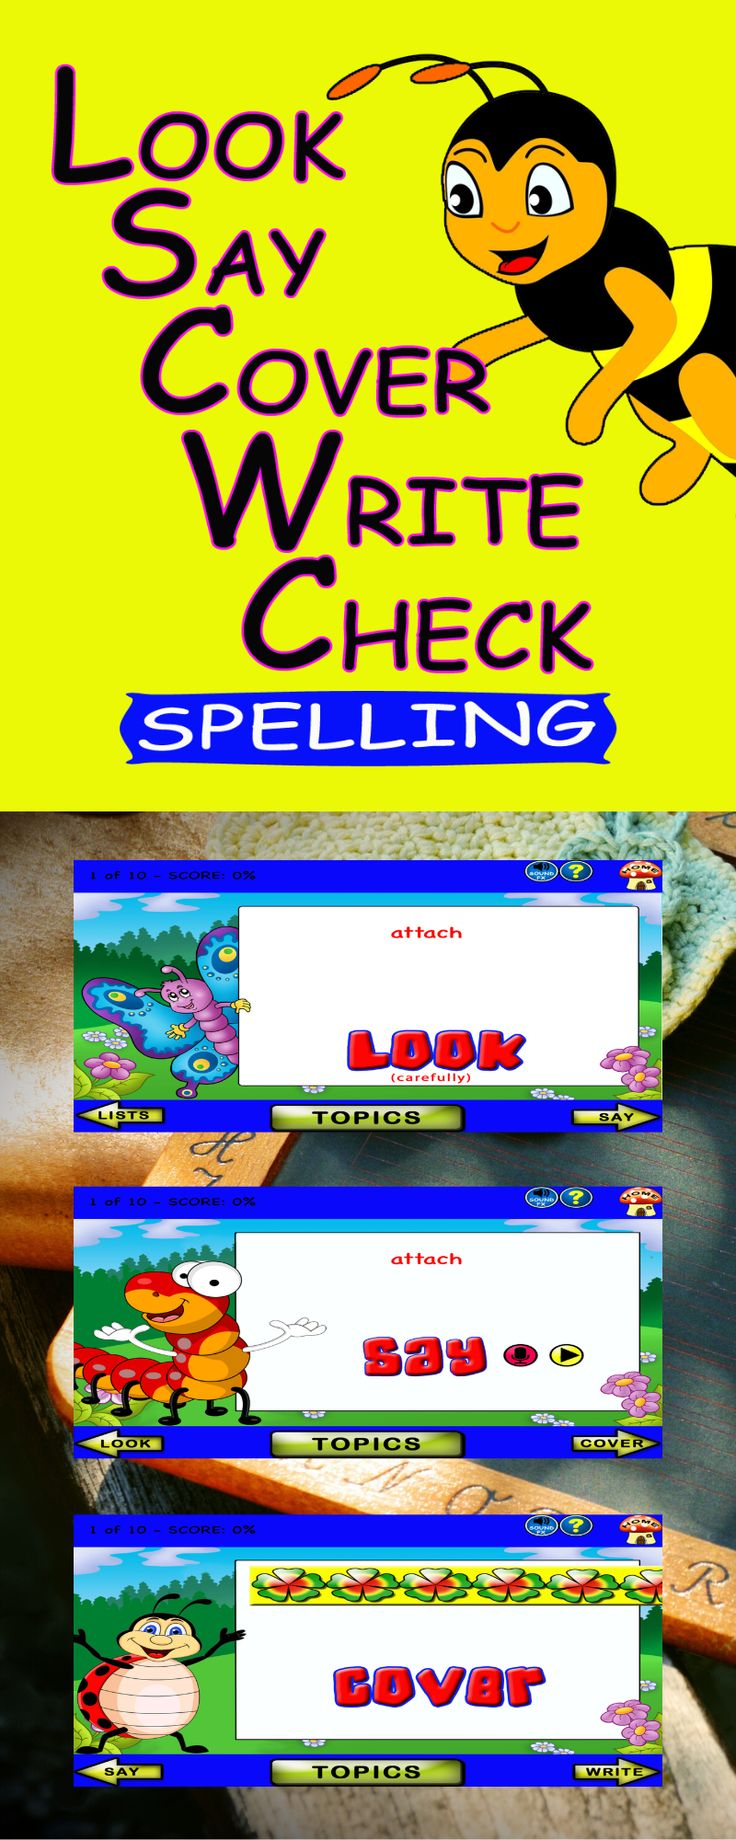 'Look Say Cover Write Check Spelling' uses a multisensory